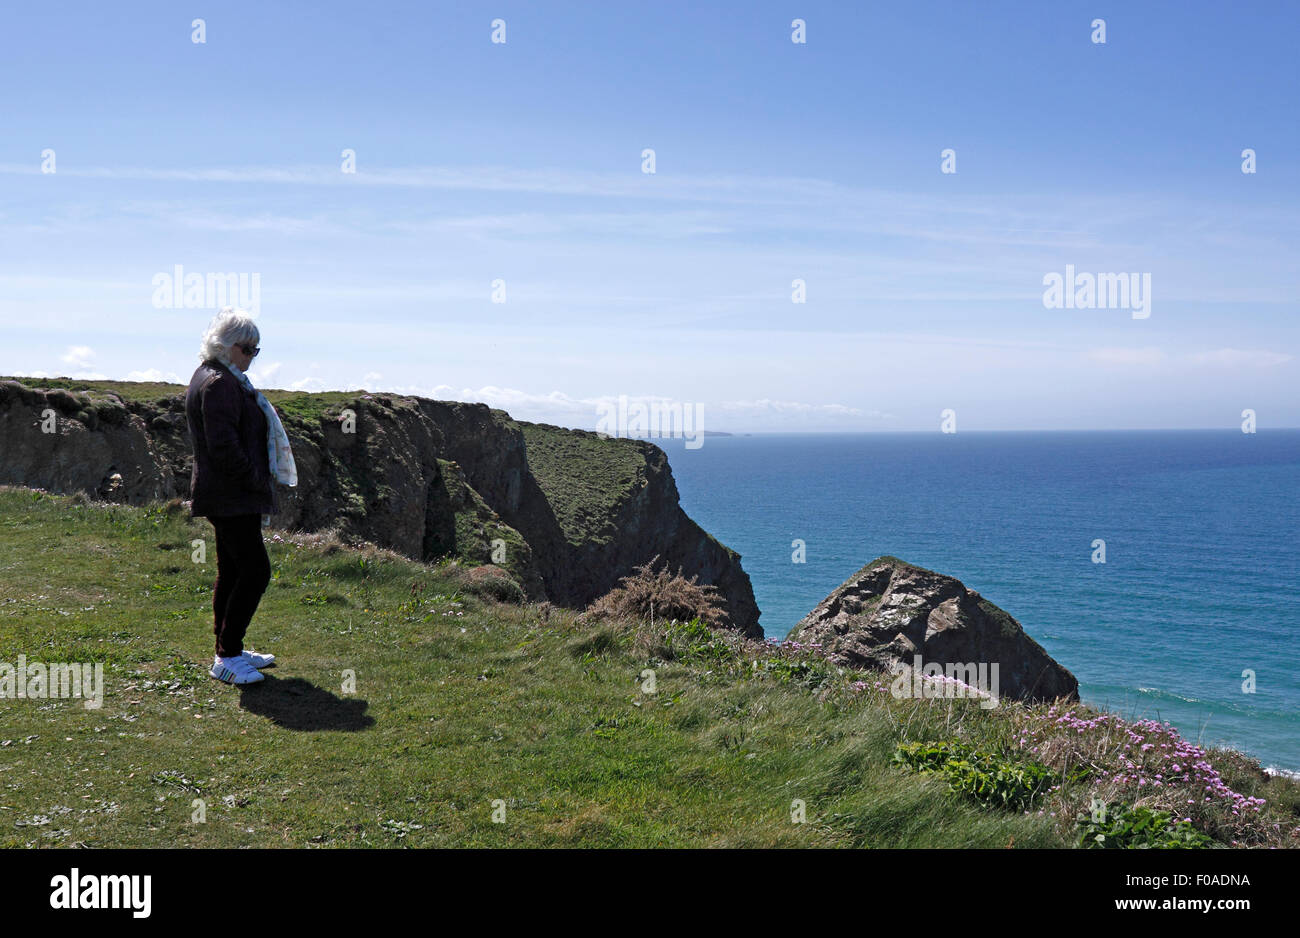 FEMALE STANDING ON A CLIFF EDGE. CORNWALL UK. - Stock Image